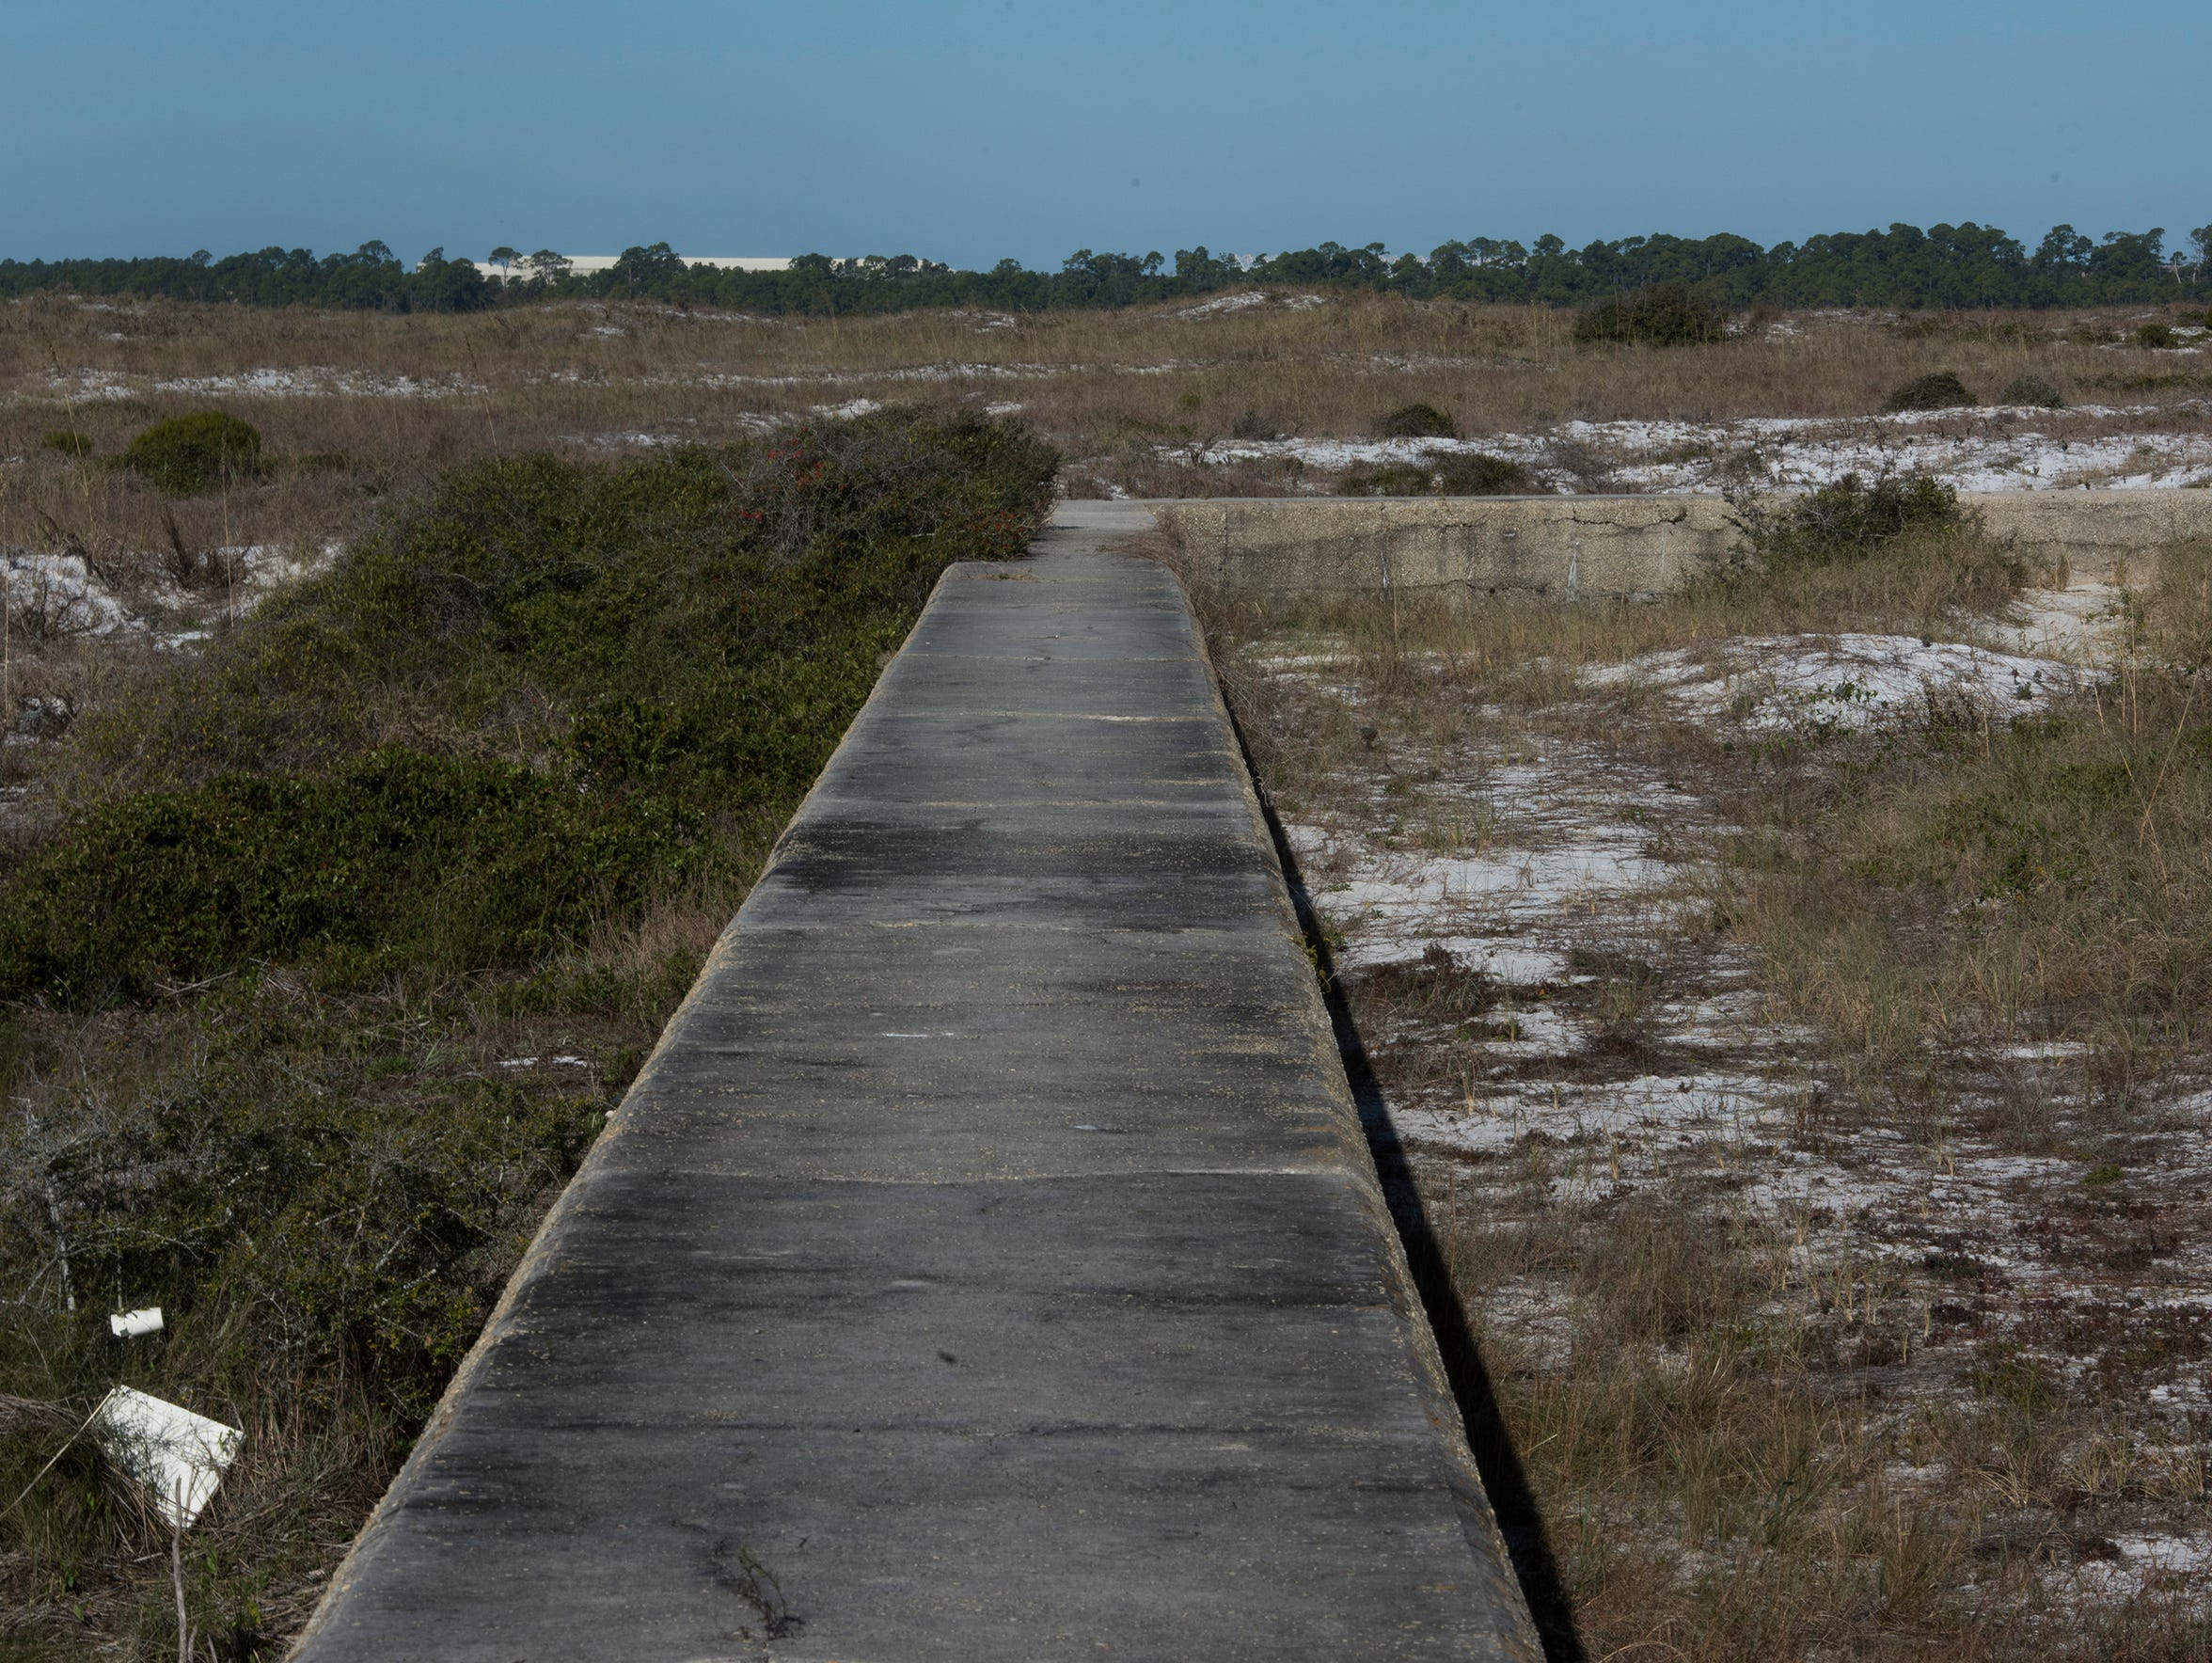 A seawall built in 1907 separates two dune areas on